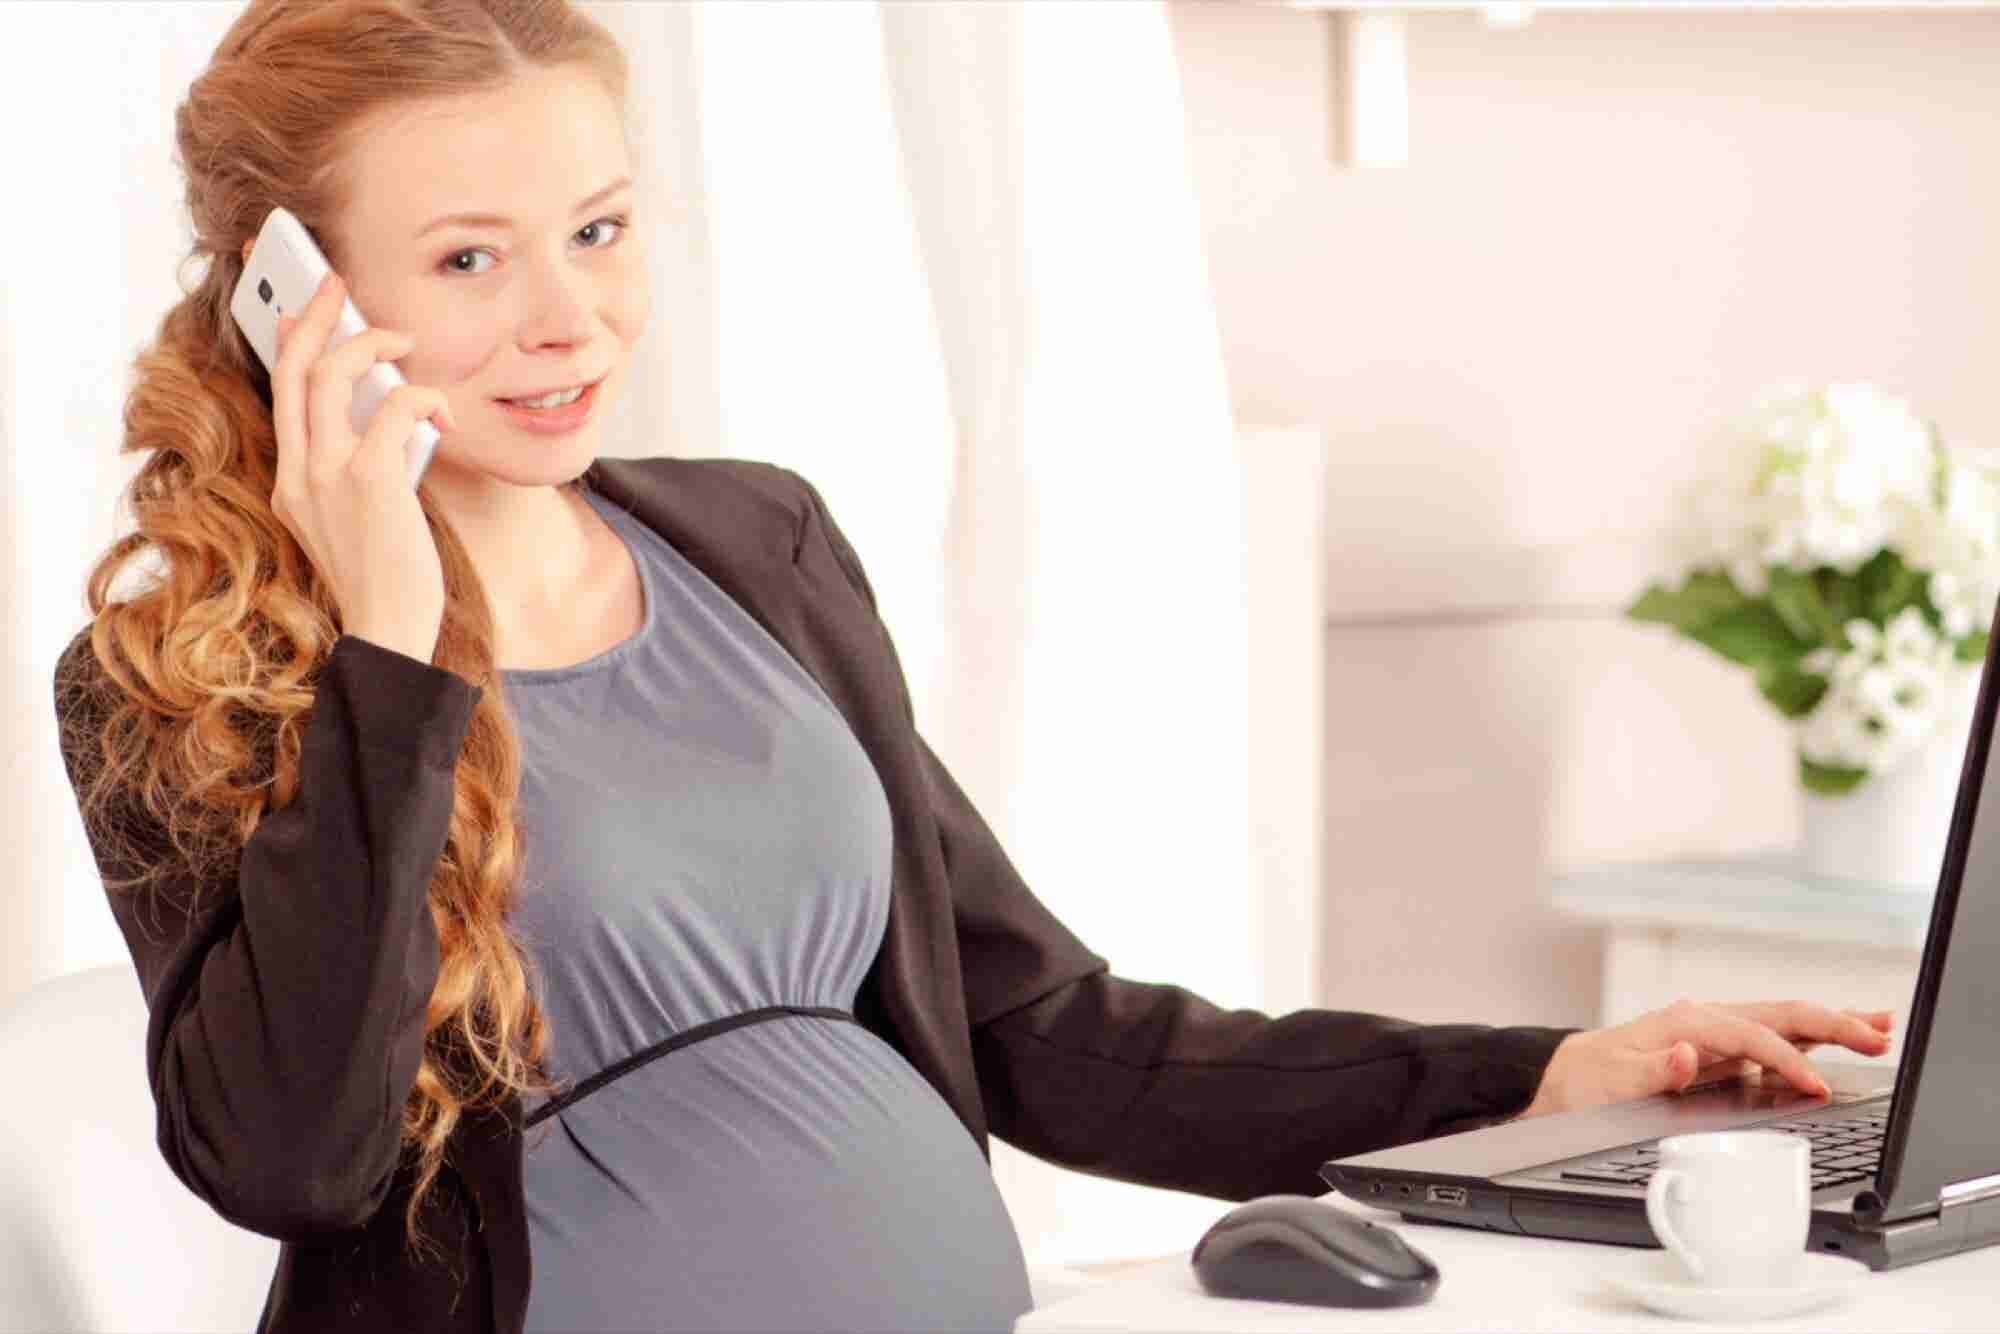 Mapping Out Maternity Leave: A Guide for Expecting Mothers in the Workplace